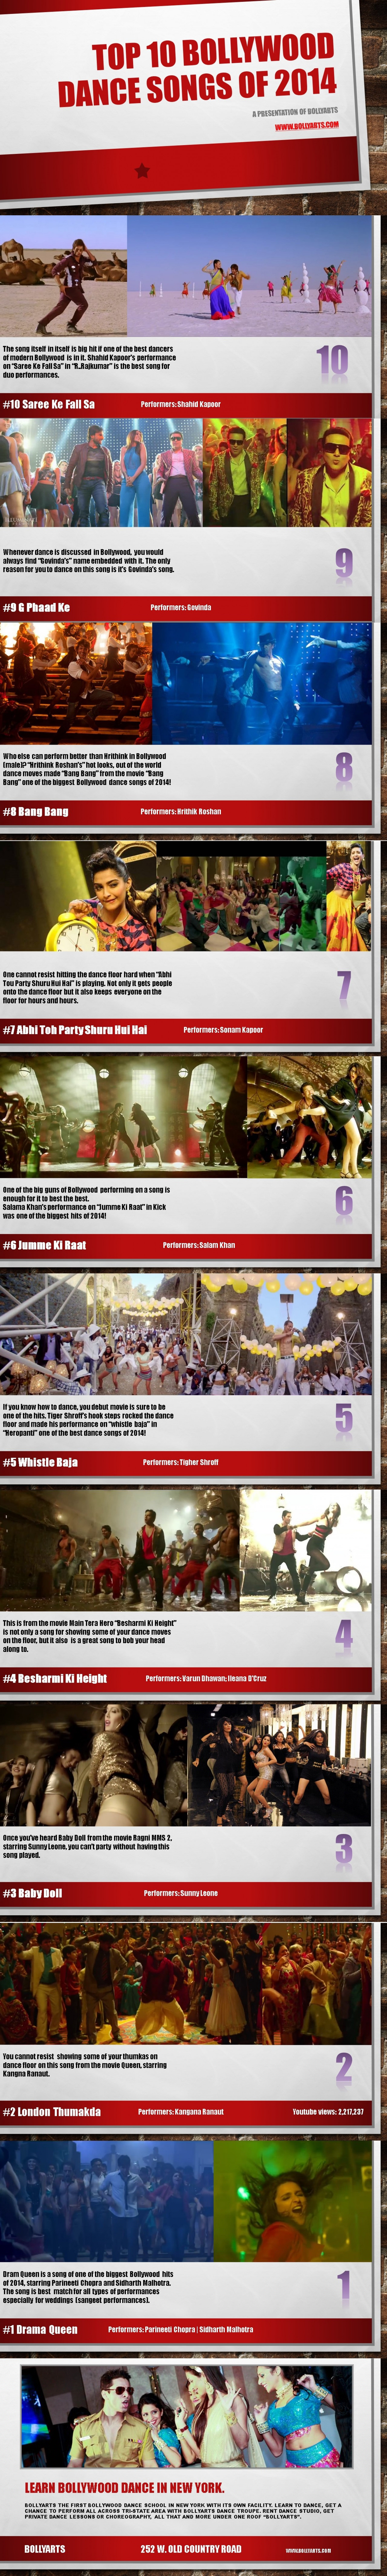 Top 10 Bollywood Dance Songs Of 2014 Infographic